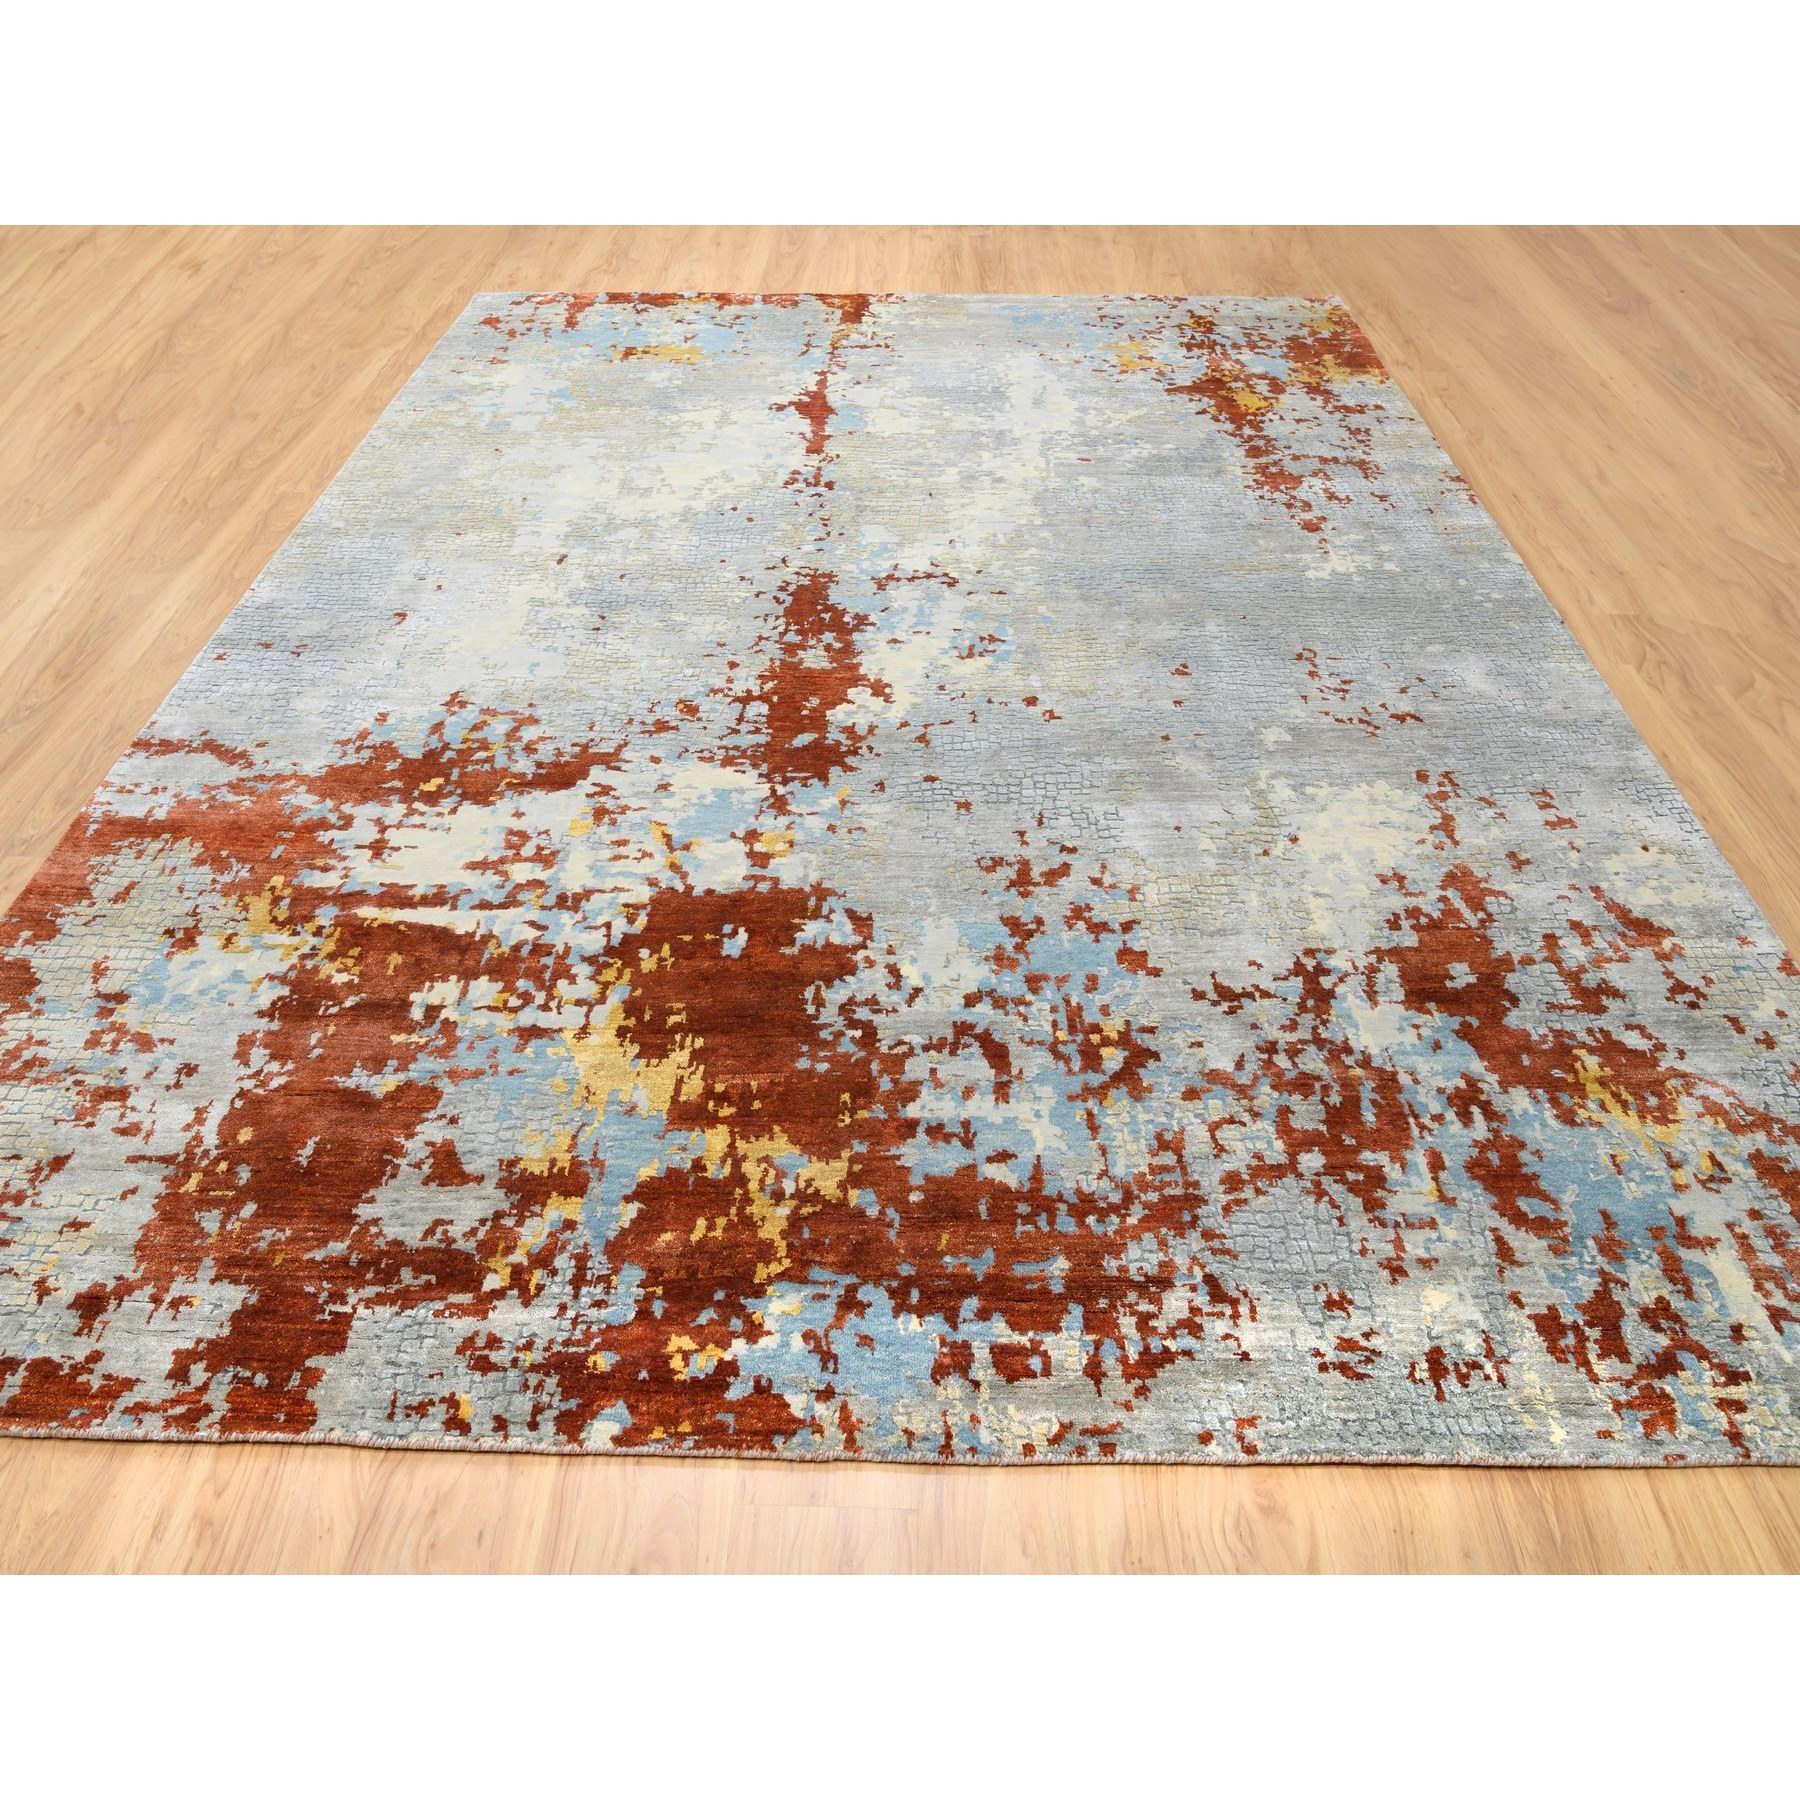 """9'x11'10"""" Wool And Silk Abstract With Fire Mosaic Design Hand Knotted Oriental Rug"""